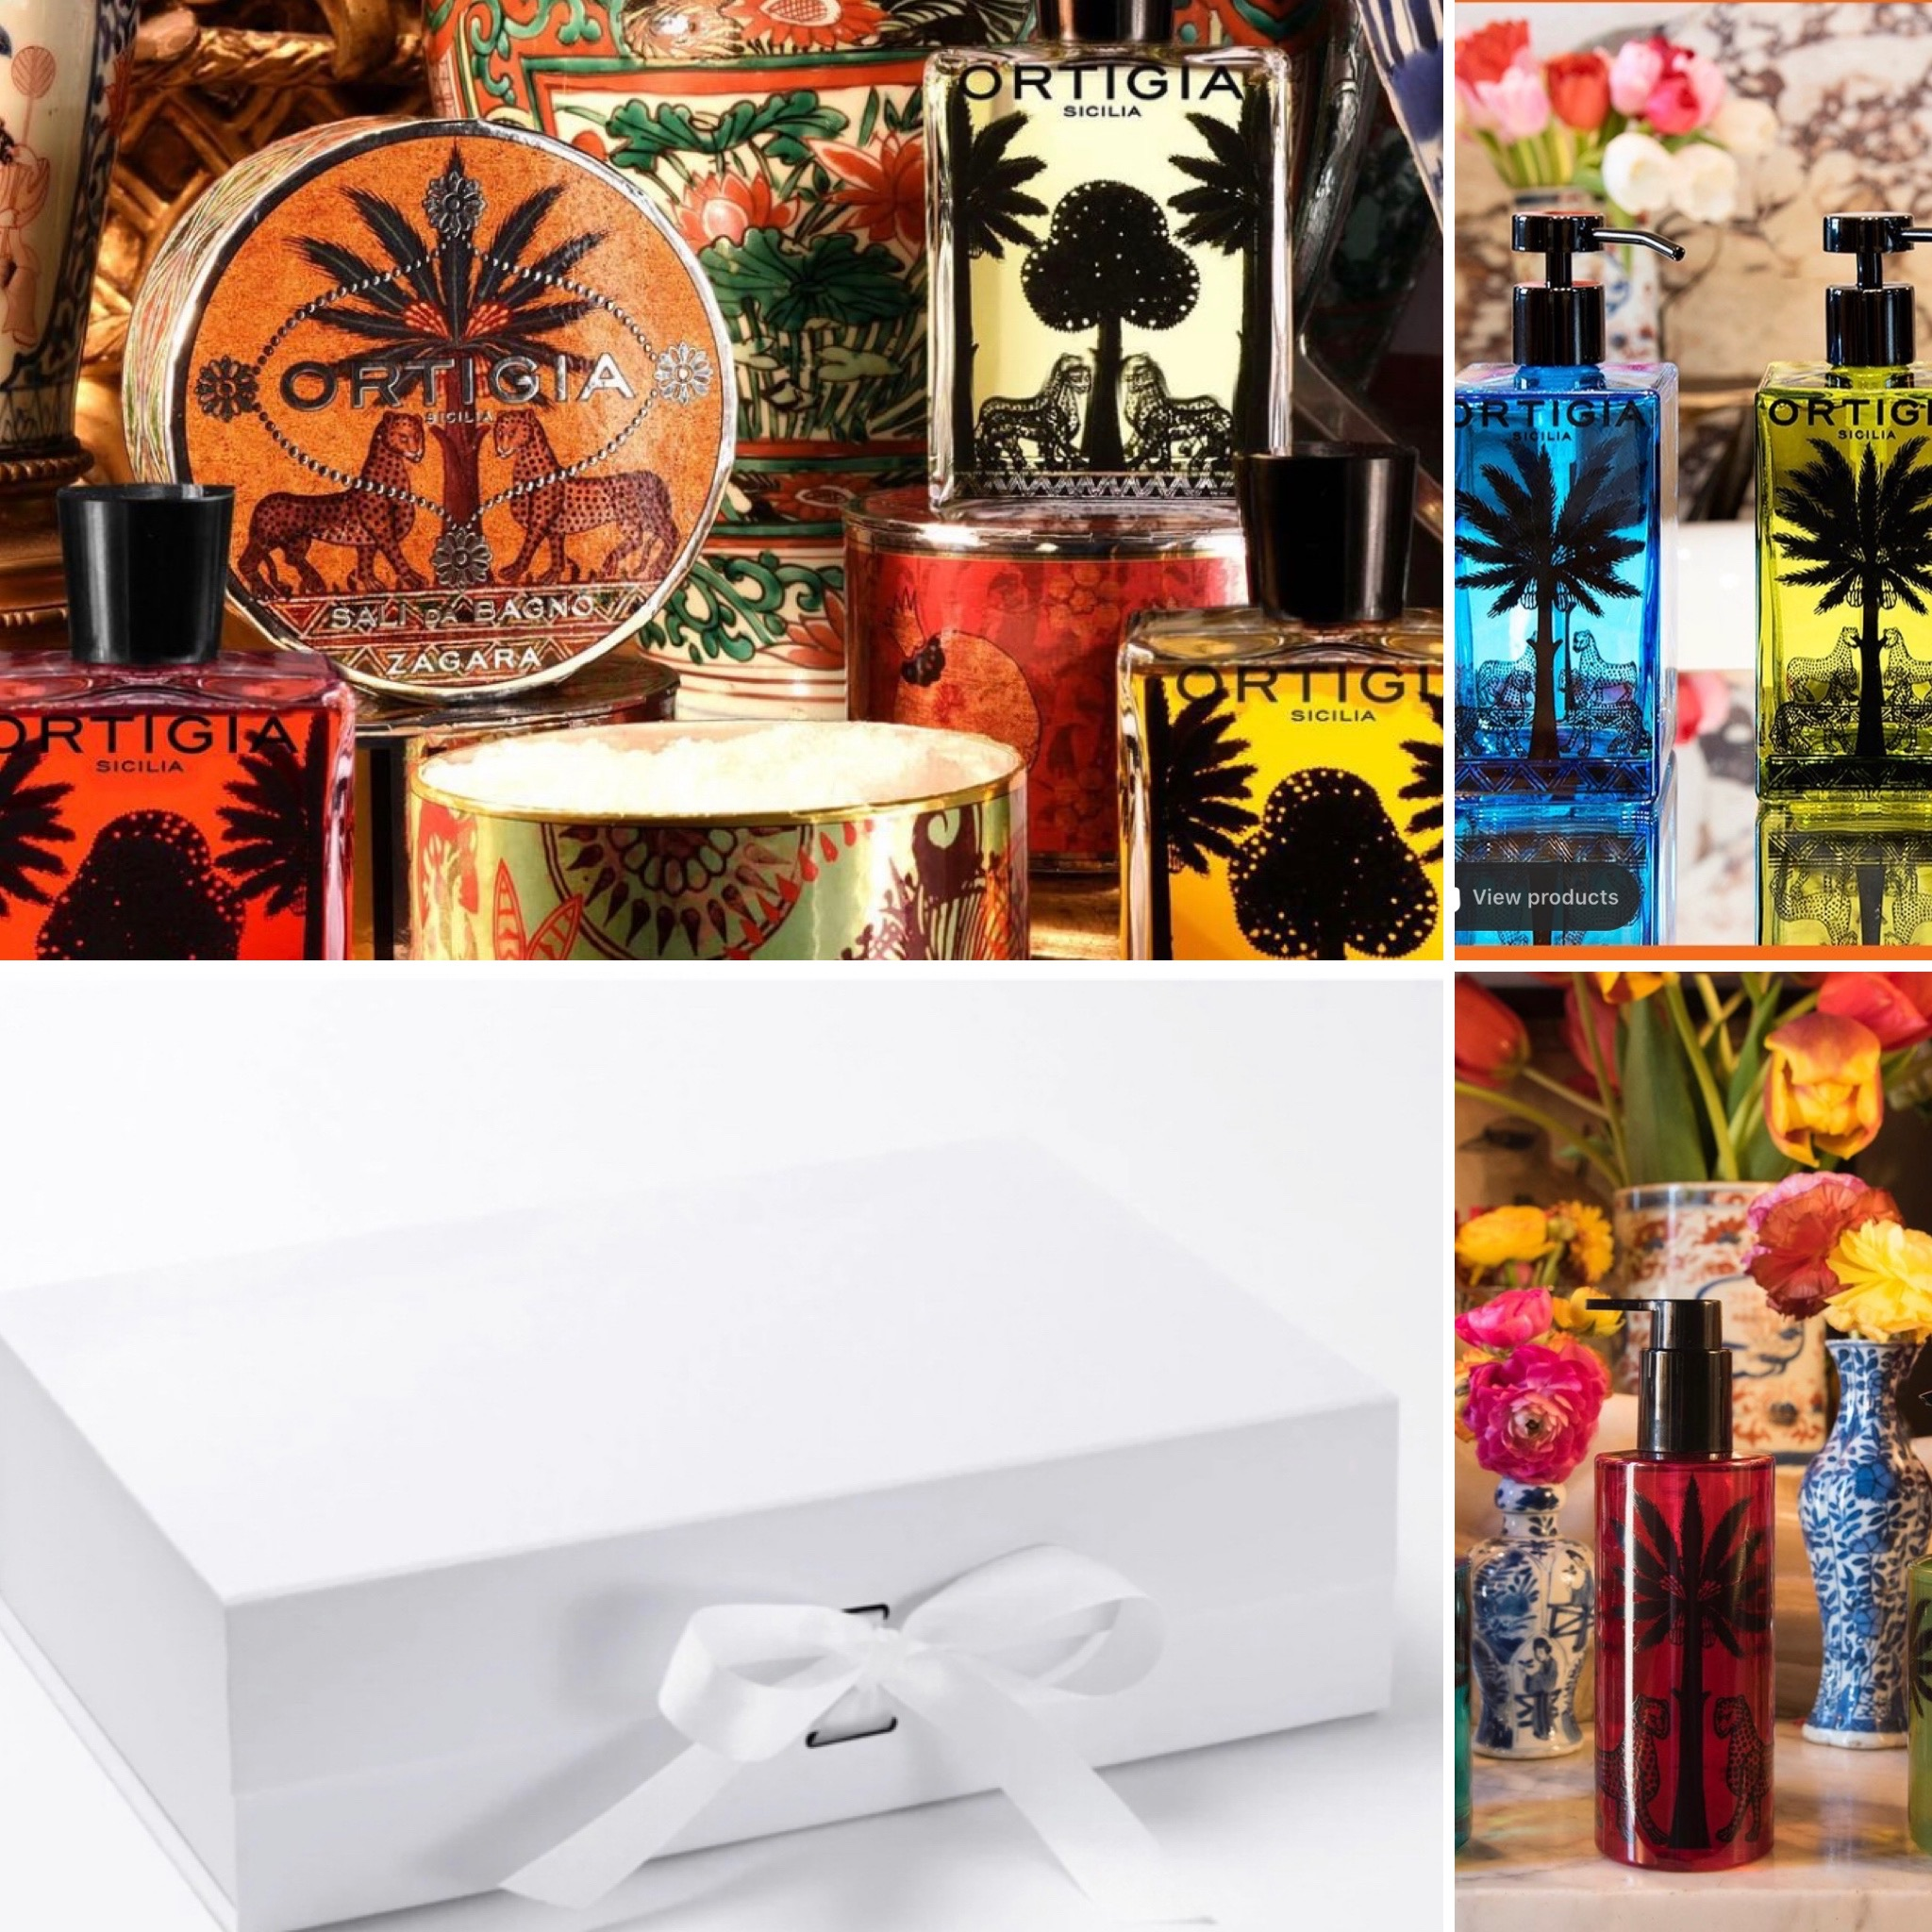 Ortigia Gift Box - Select Your Own Products - Minimum Spend £40 on Ortigia Products